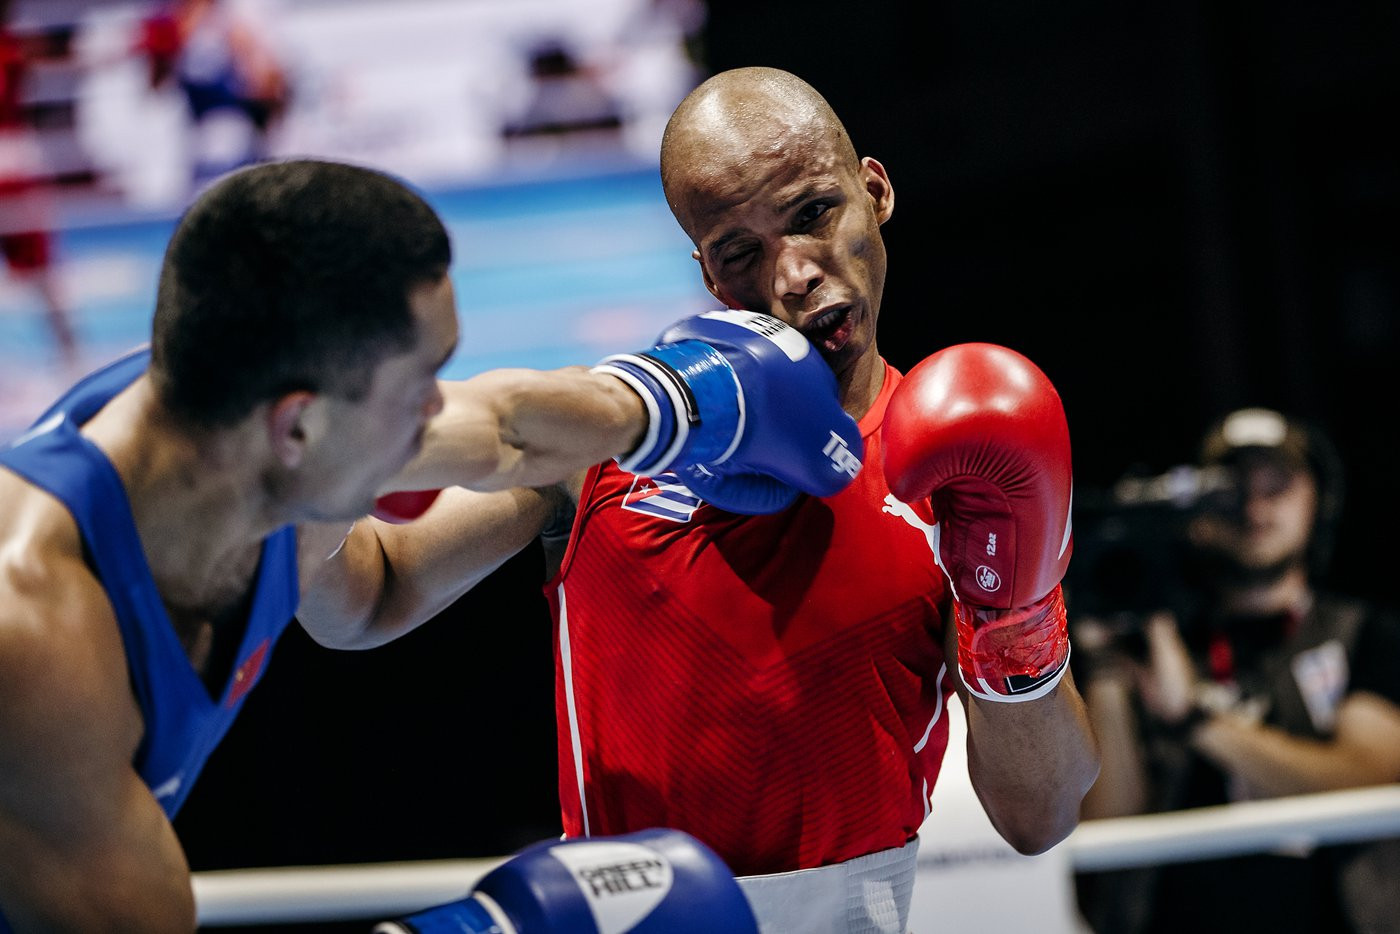 Welterweight top seed Iglesias records unanimous victory at AIBA World Championships